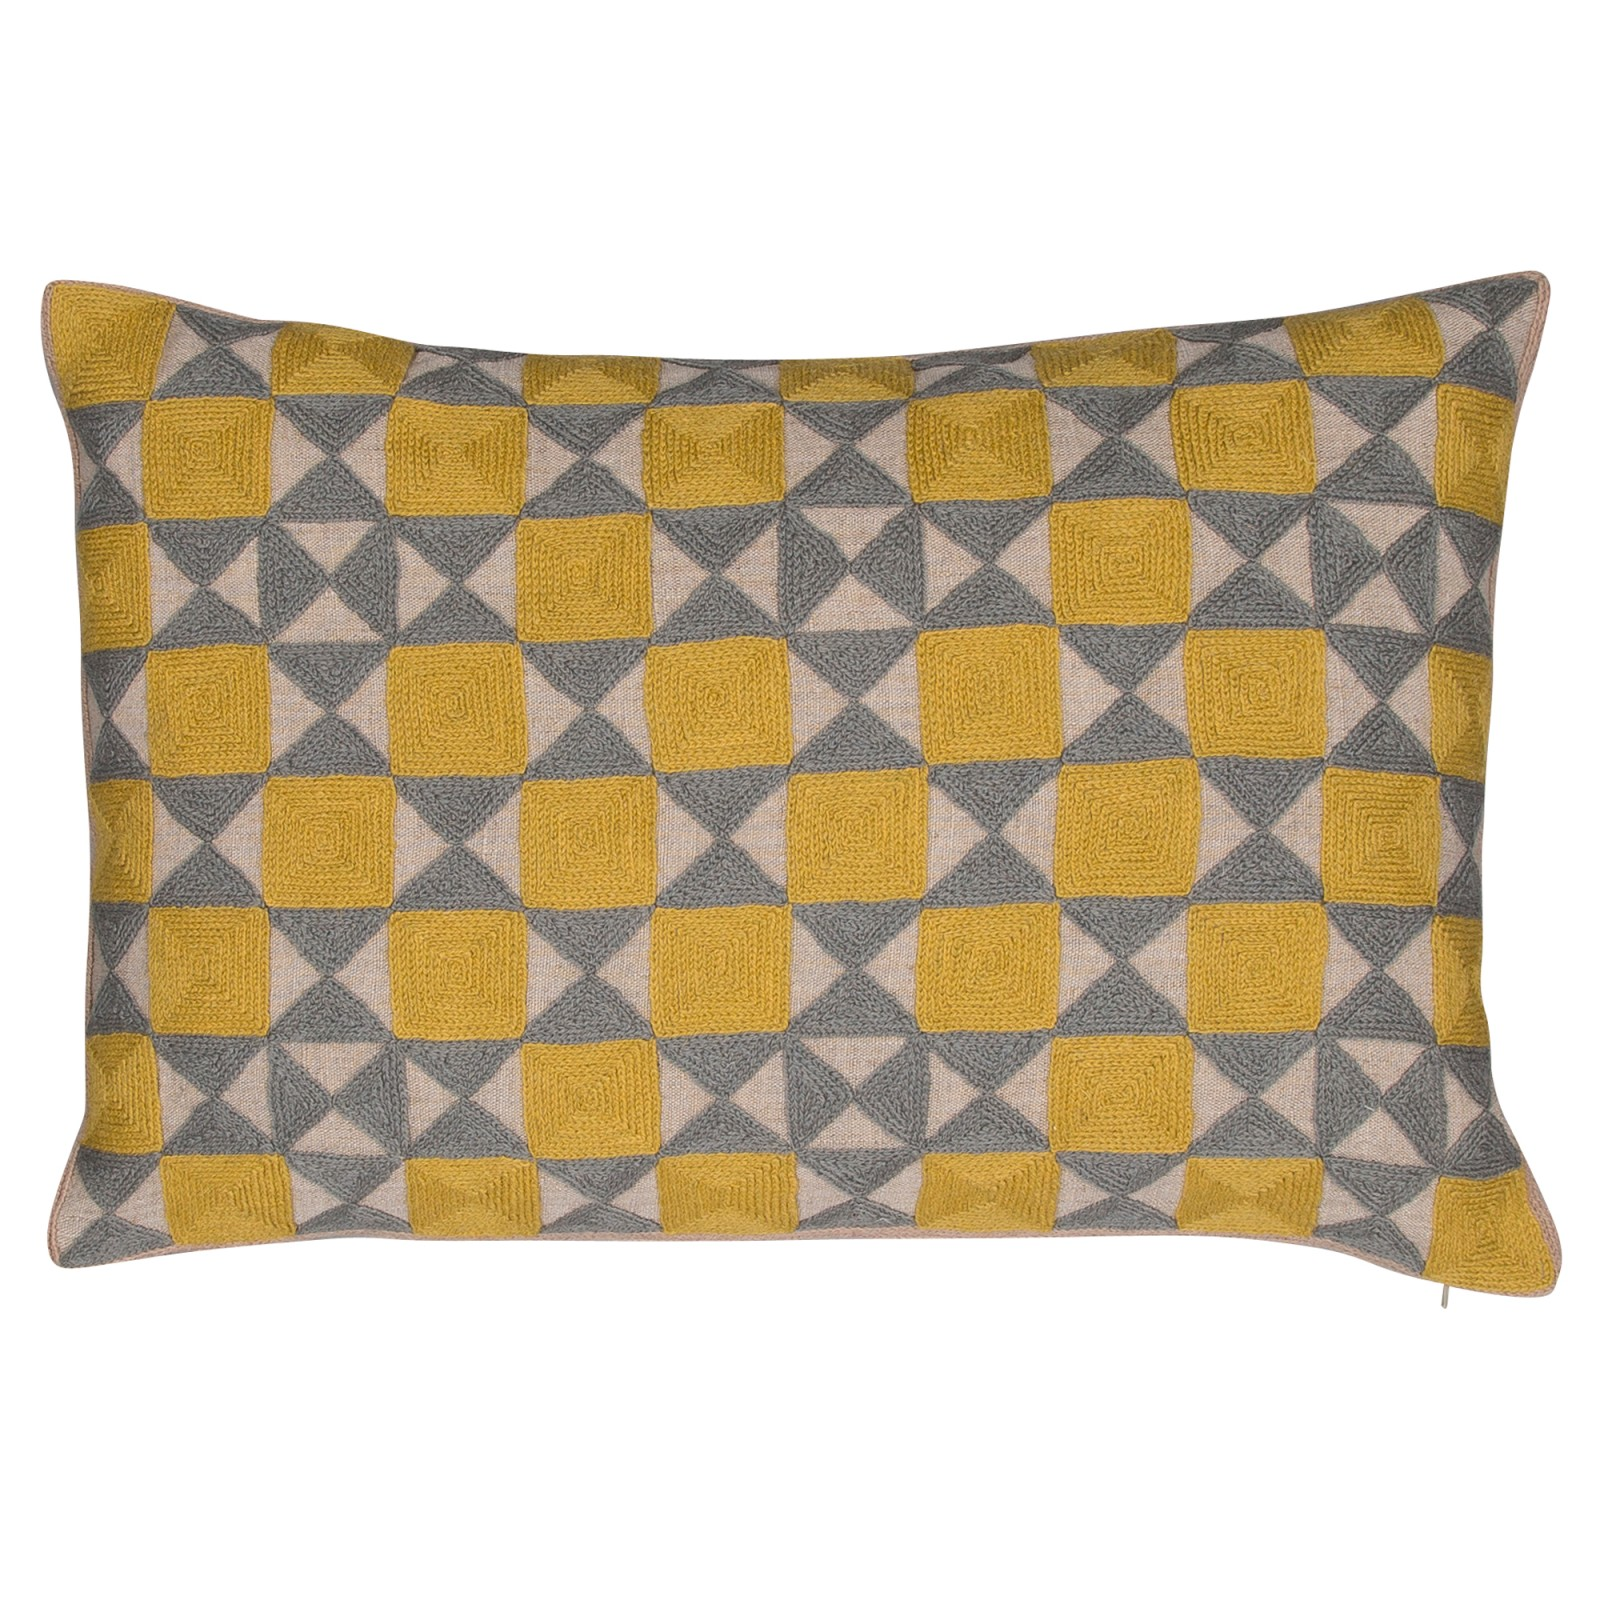 Zellij Cushion Ash Grey & Chartreuse